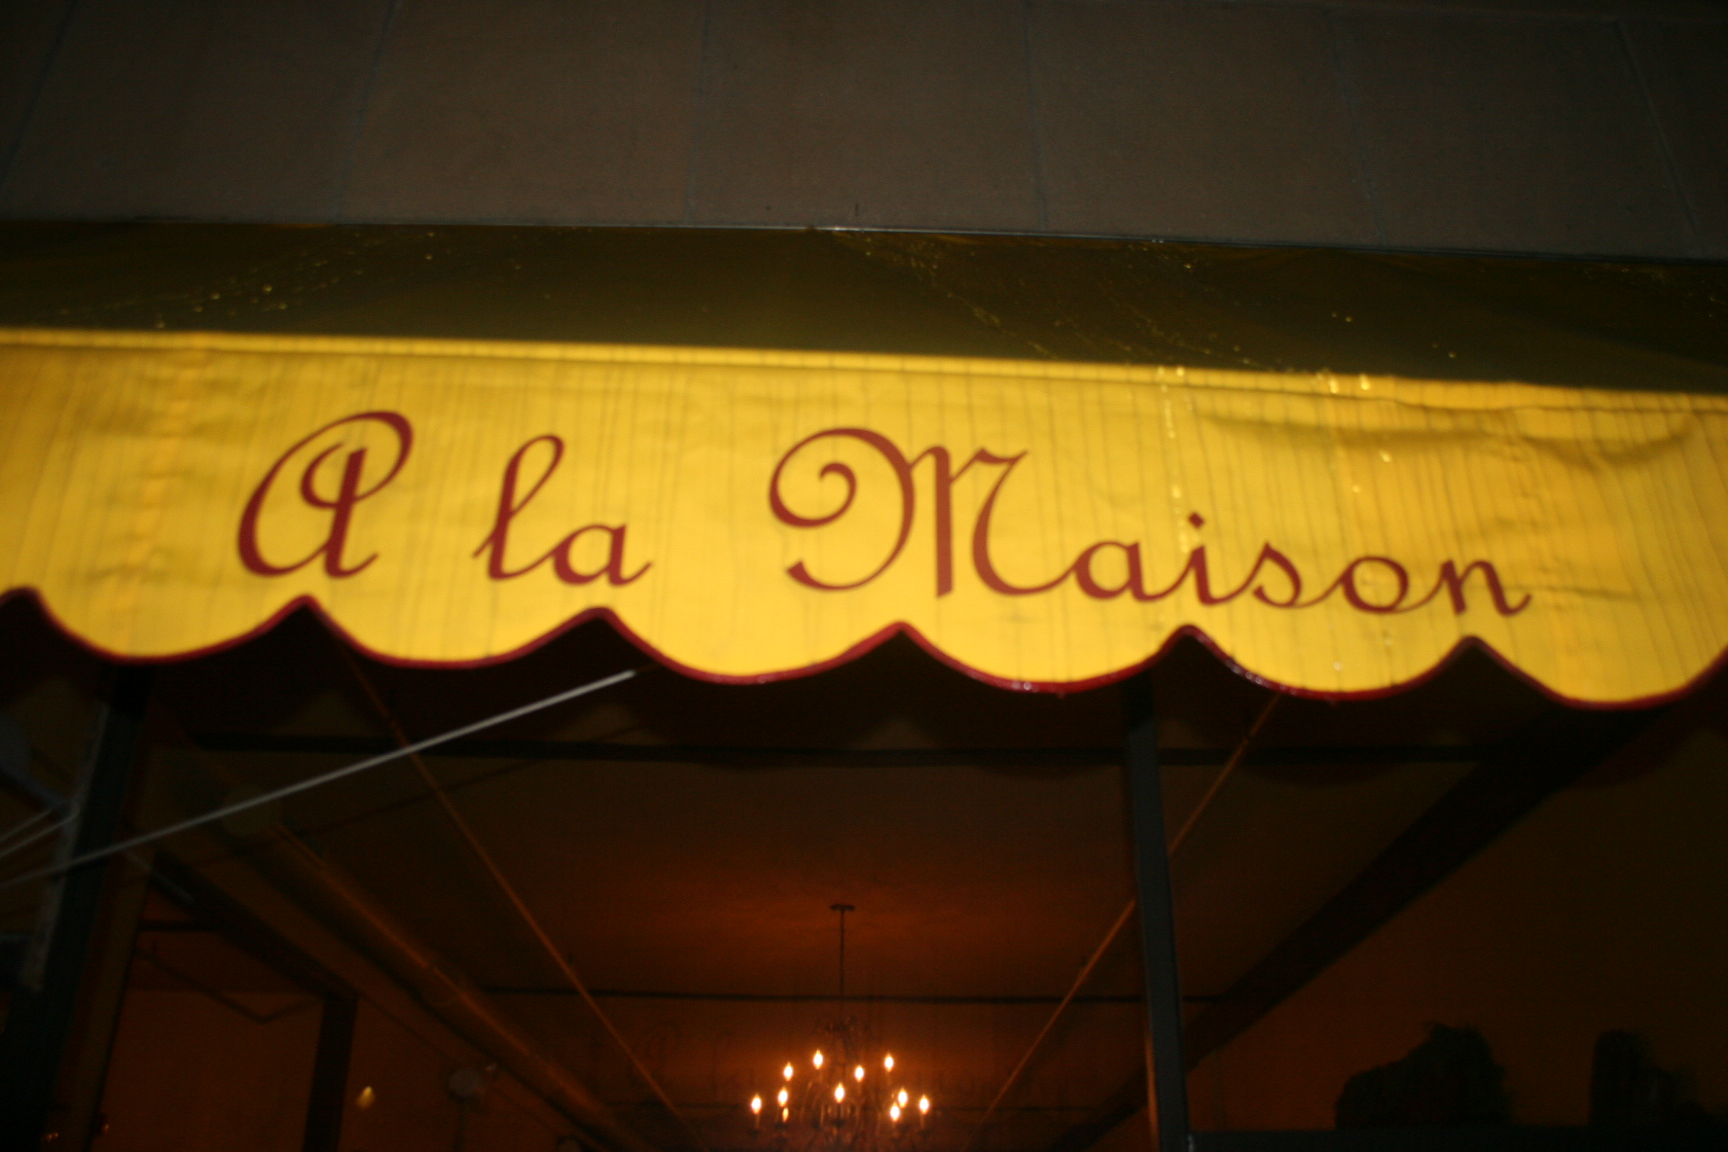 A la maison south jersey wine dine for A la maison ardmore pa